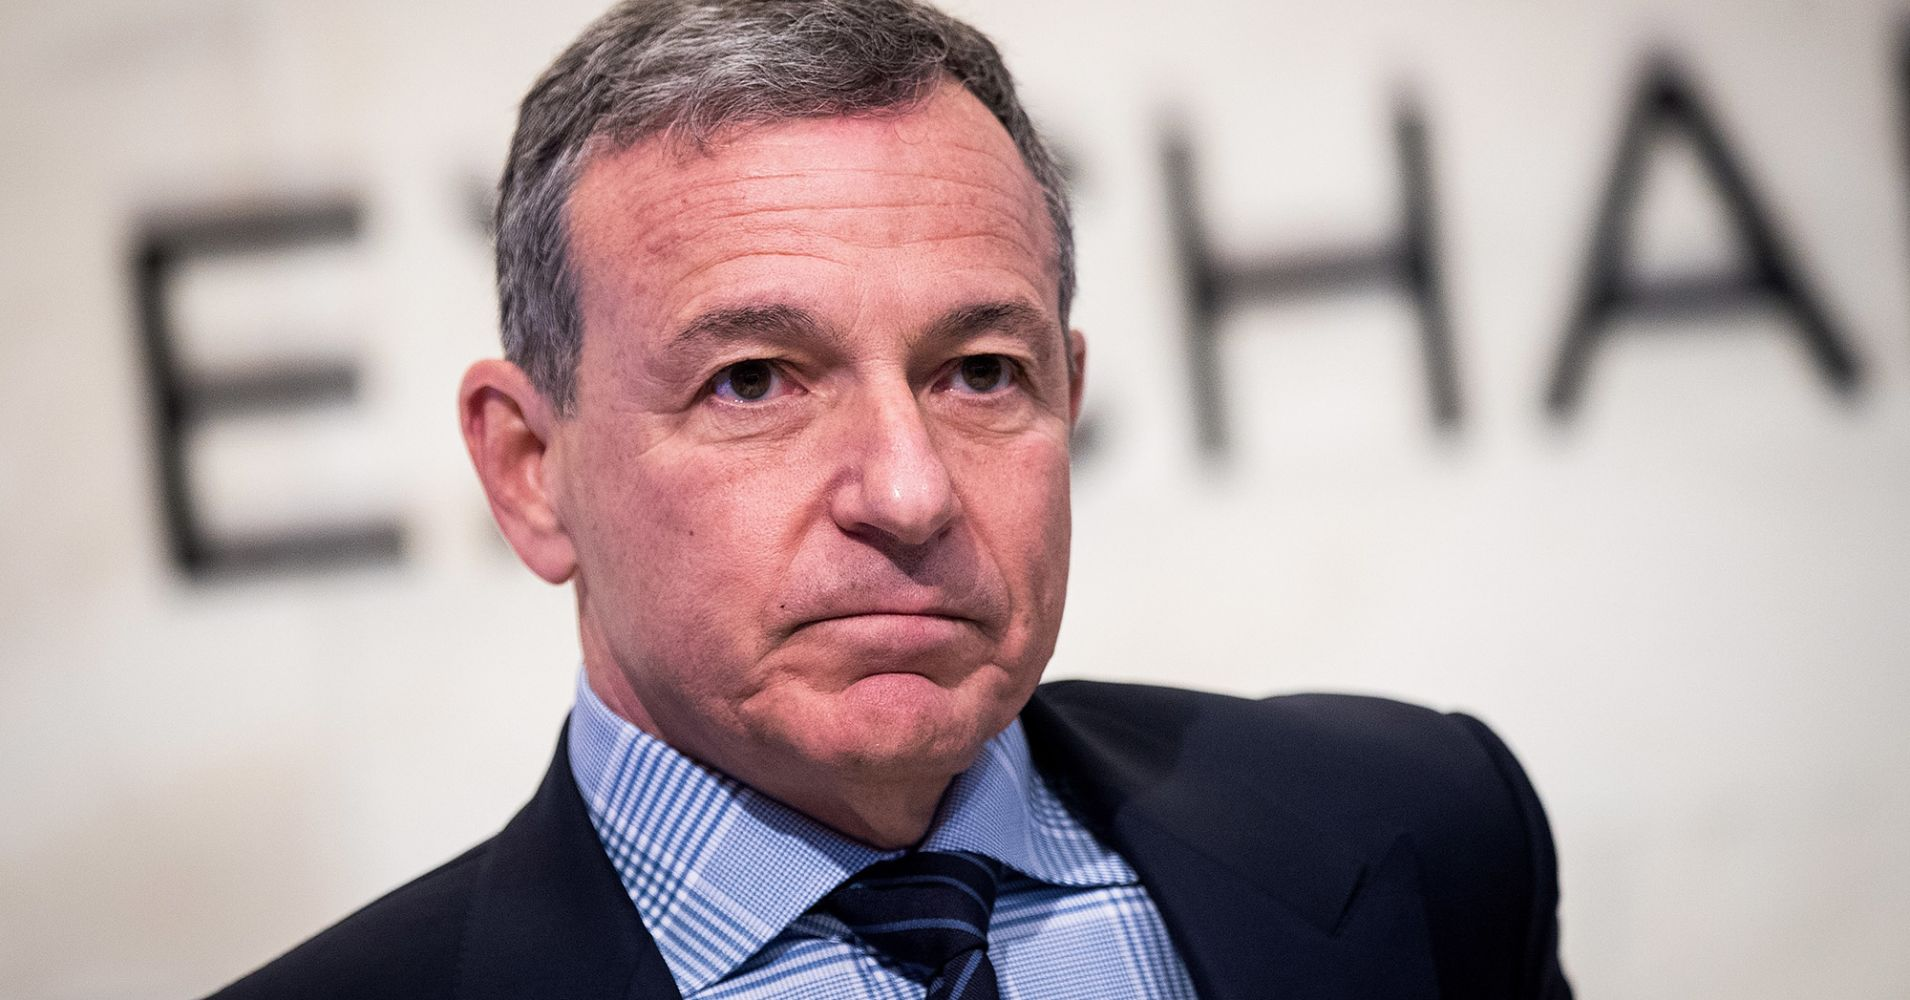 Disney CEO Bob Iger sharply criticizes social media